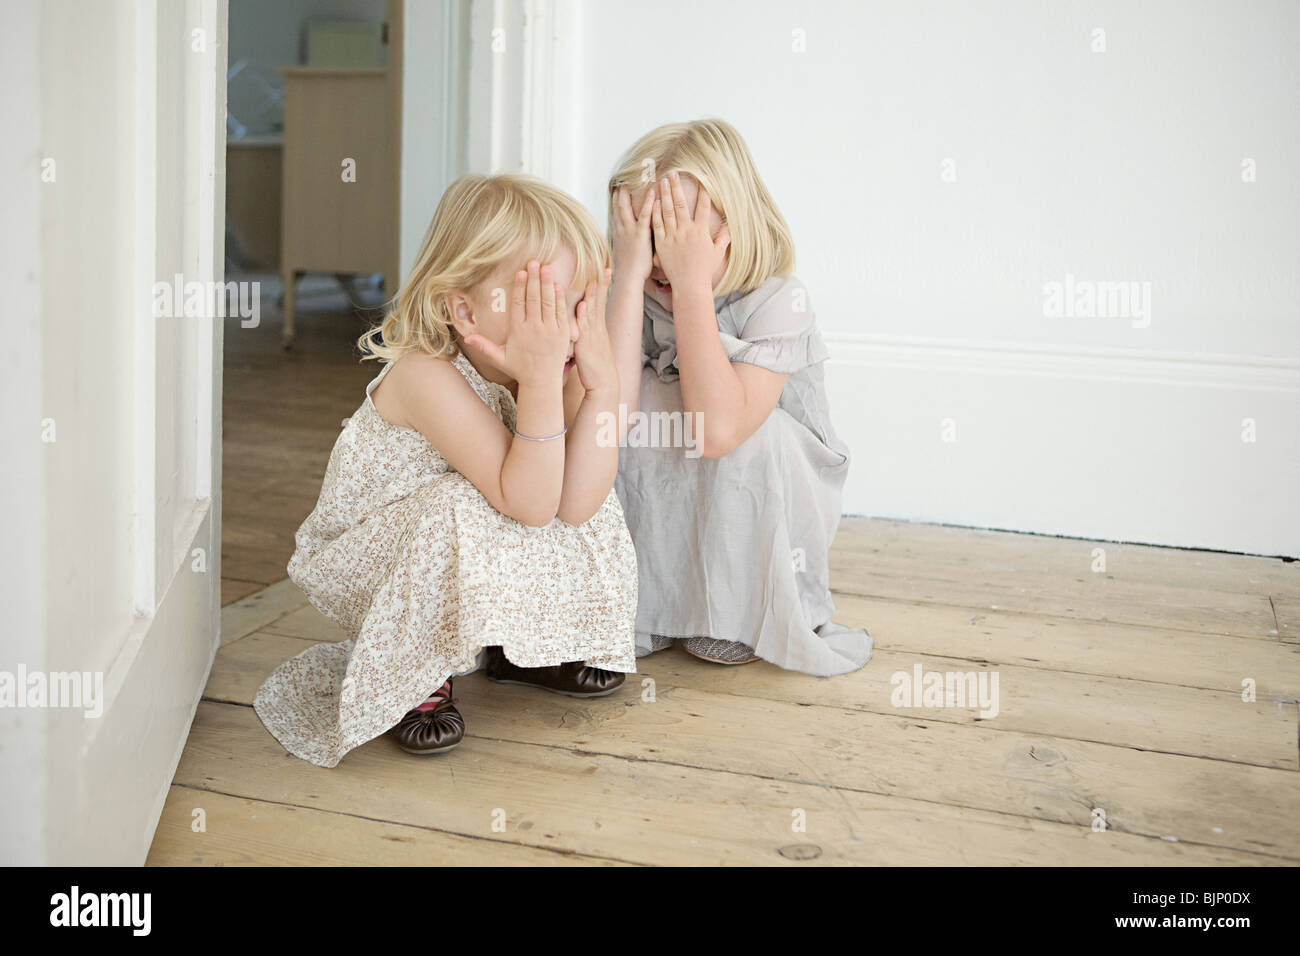 Sisters playing hide and seek Stock Photo